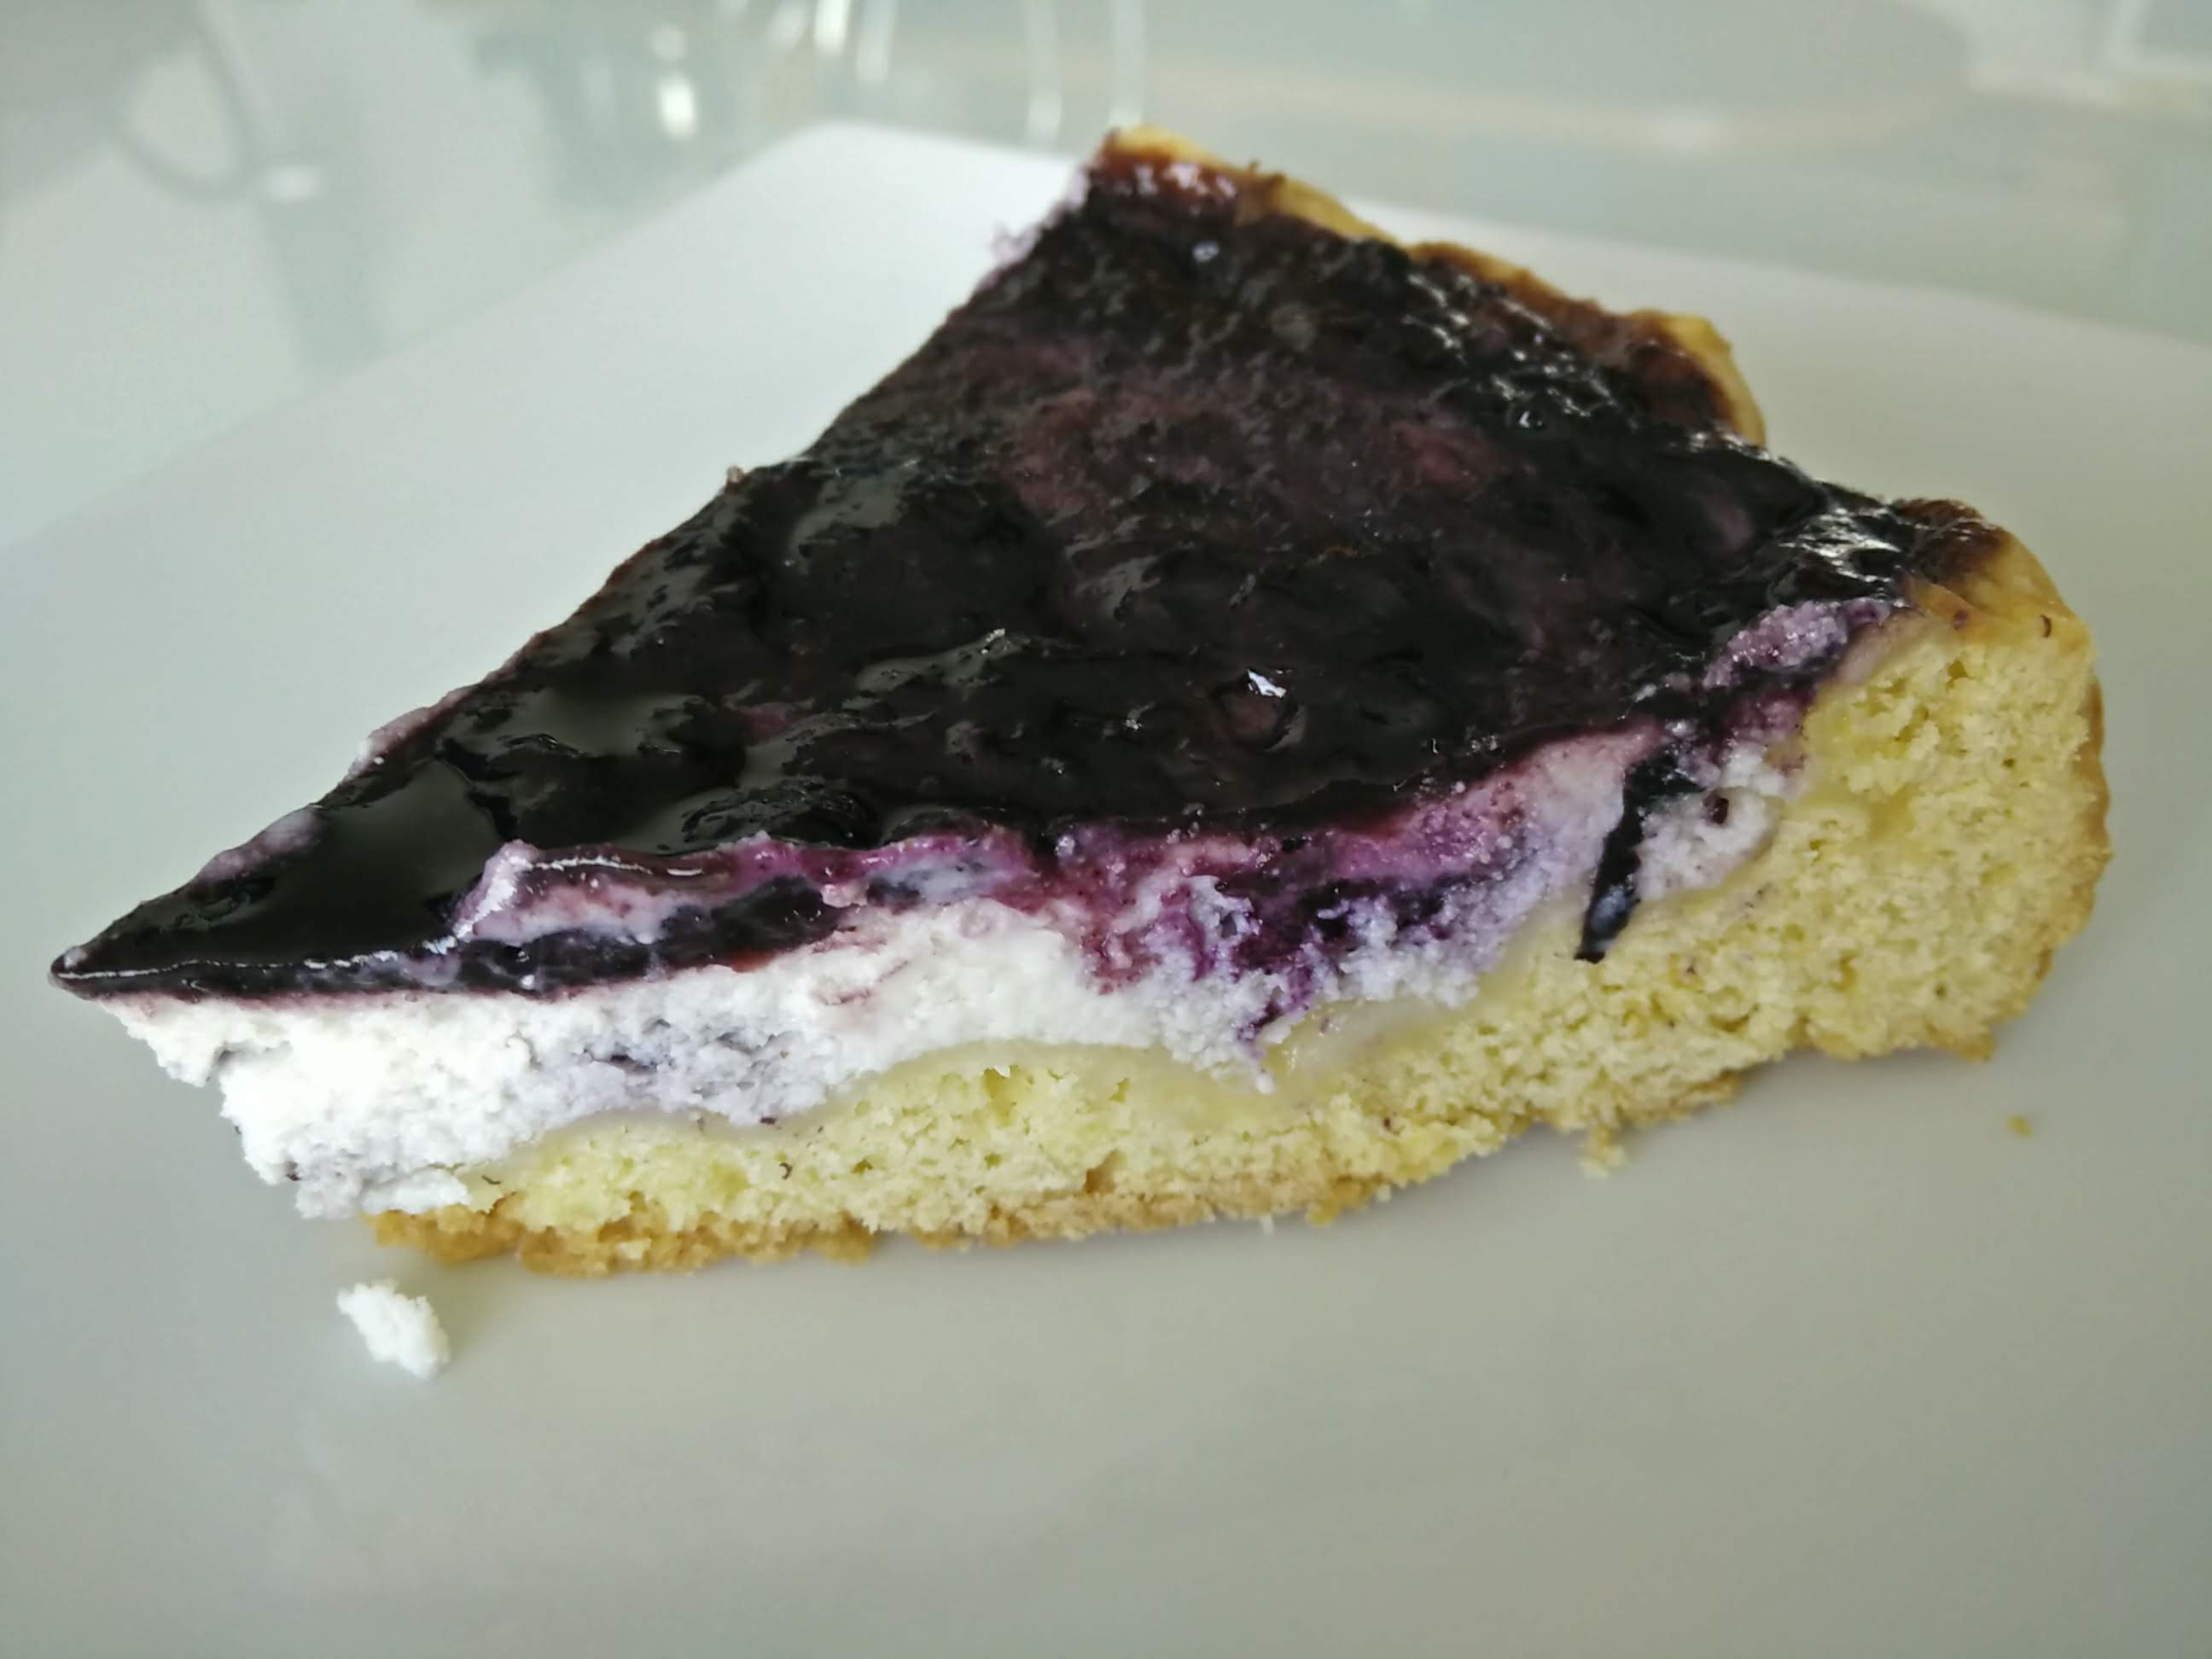 Crostata di mirtilli e ricotta